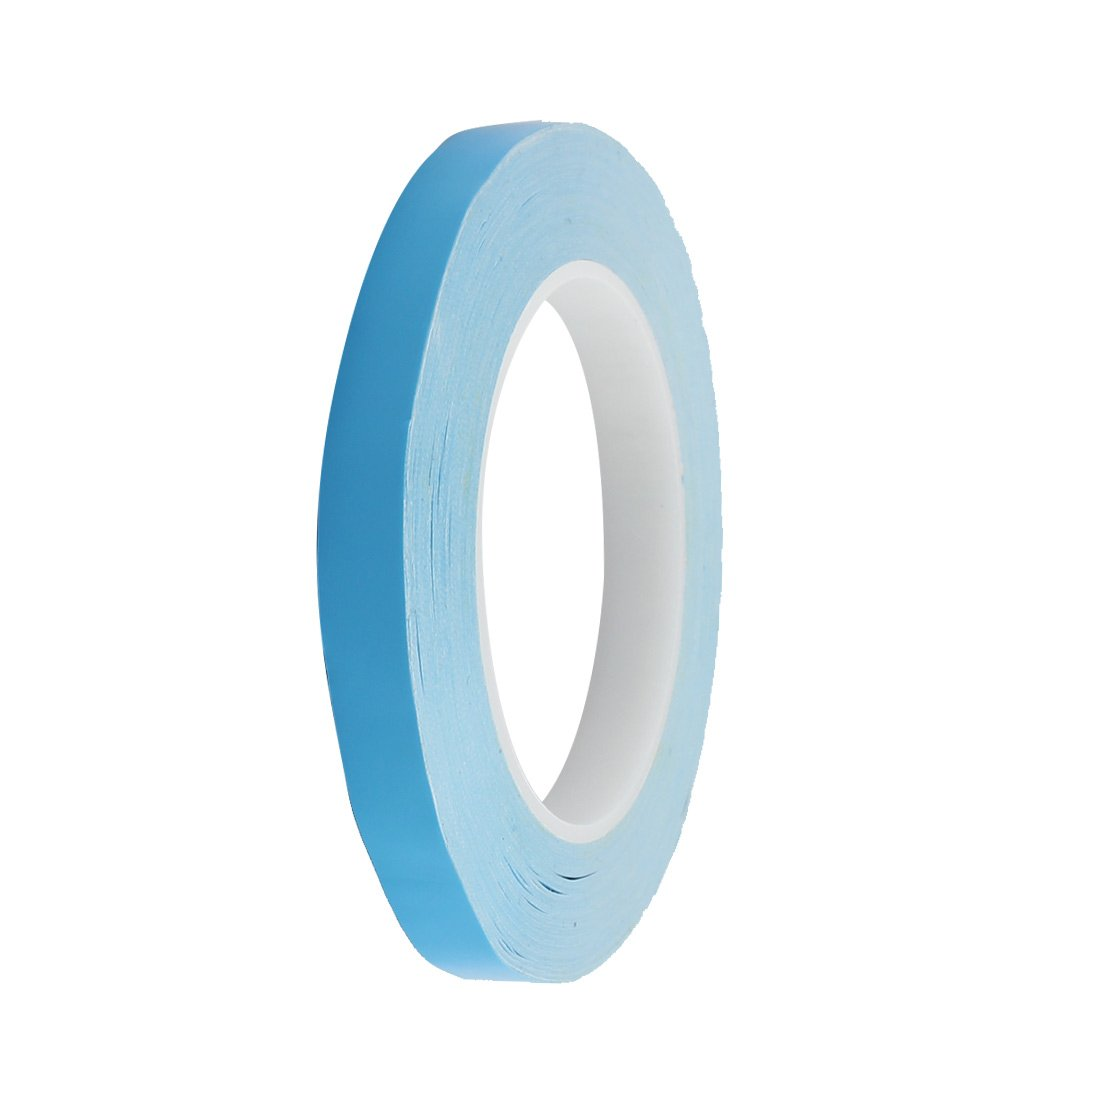 uxcell 12mm Width 25M Length Double Sided Thermal Adhesive Tape for LED Heatsink